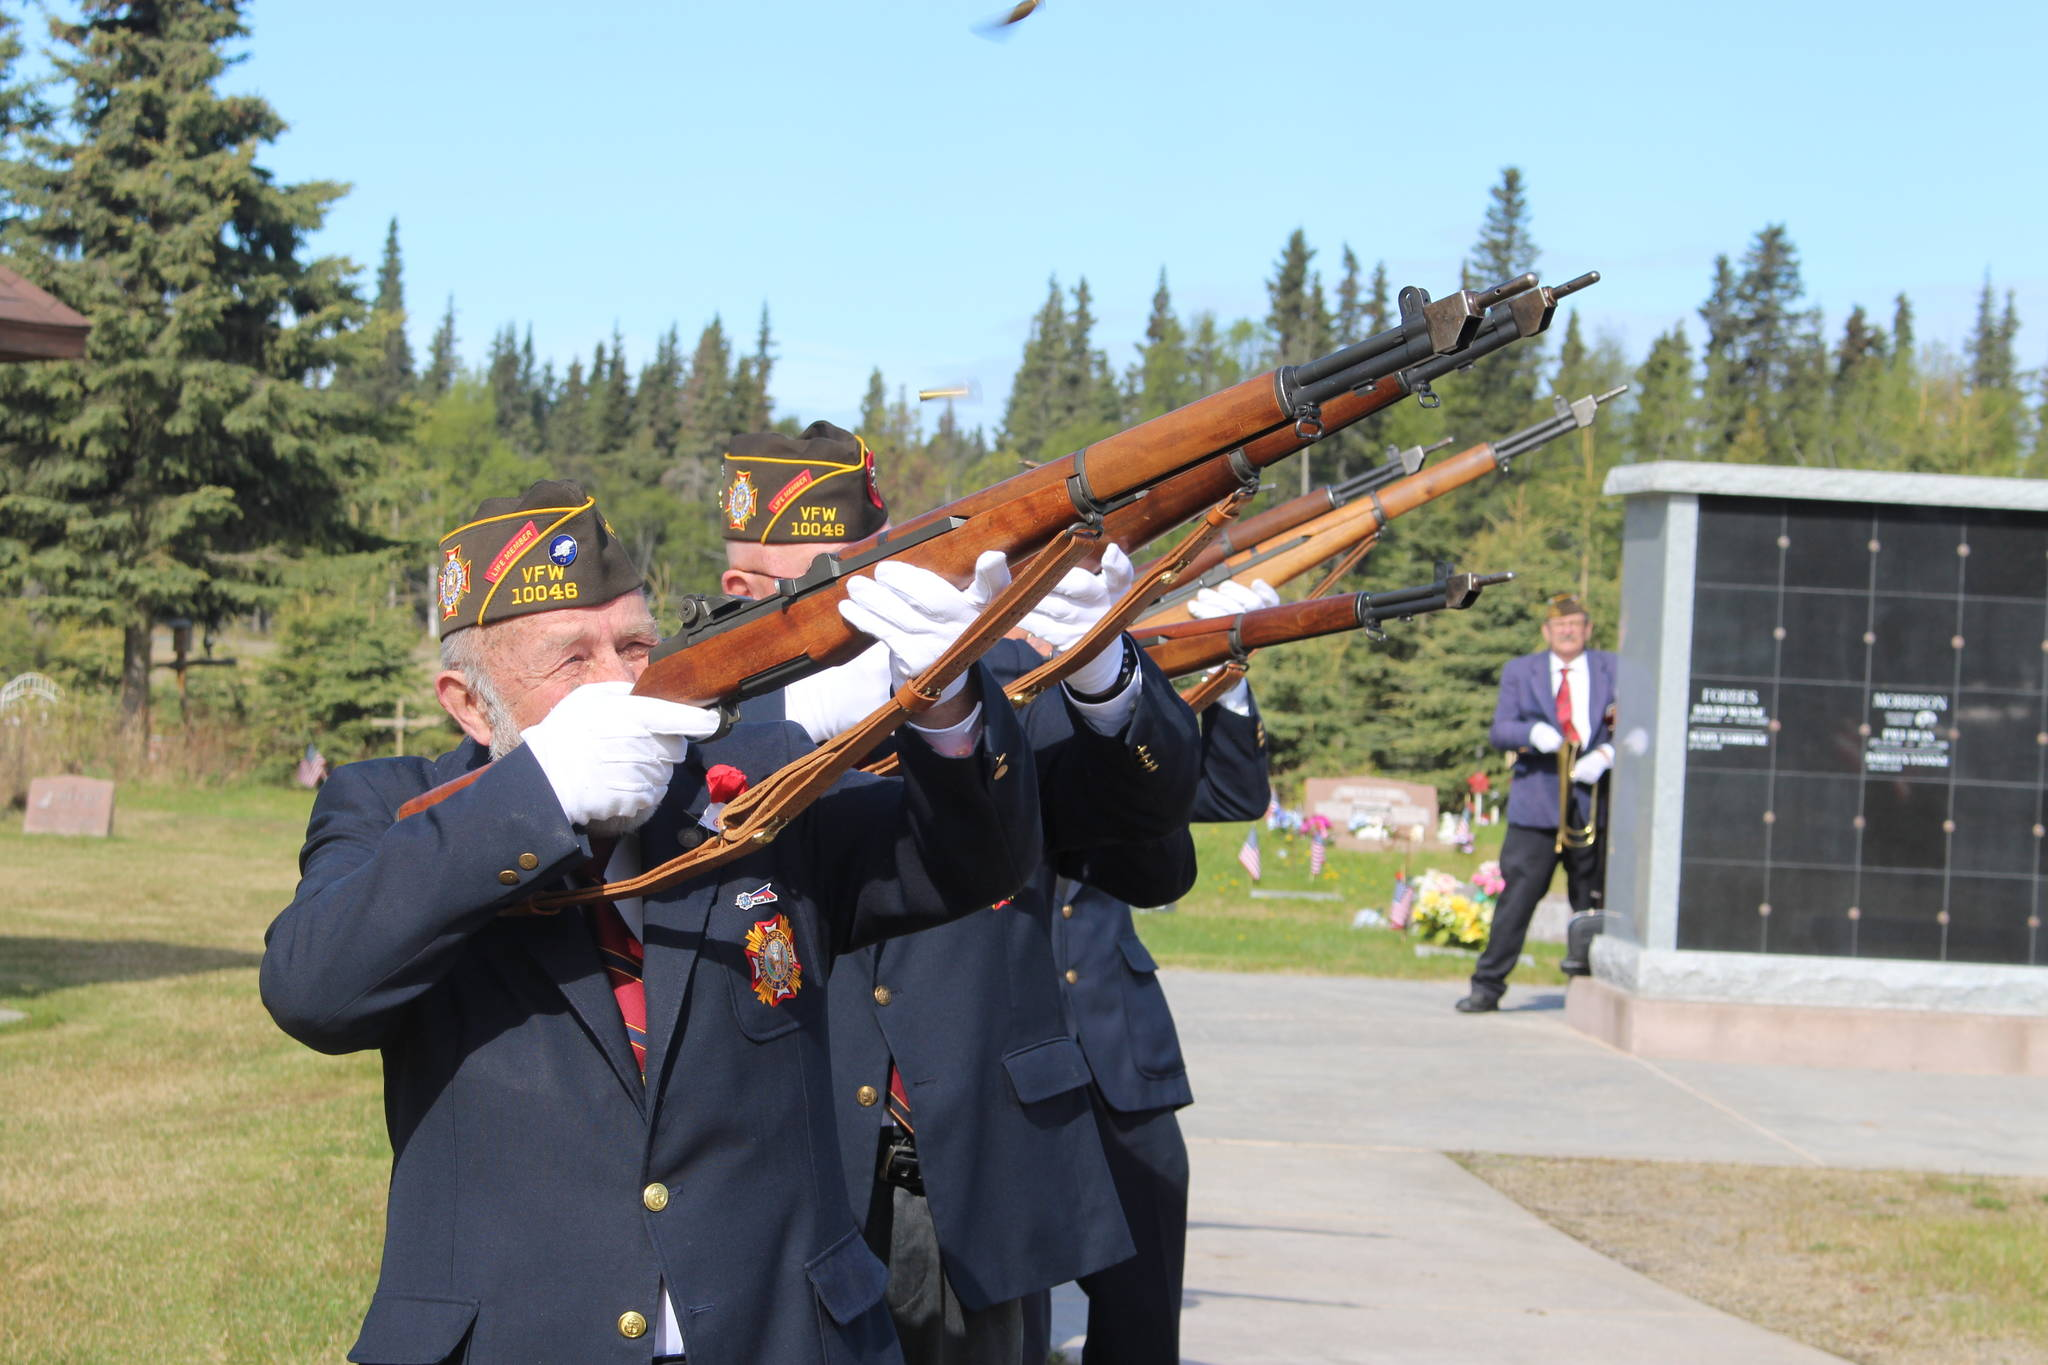 Kenai VFW Commander Mitch Johnson and members of the local VFW Honor Guard give a 21-gun salute during the Memorial Day ceremony at the Kenai Cemetery on May 25, 2020. (Photo by Brian Mazurek/Peninsula Clarion)